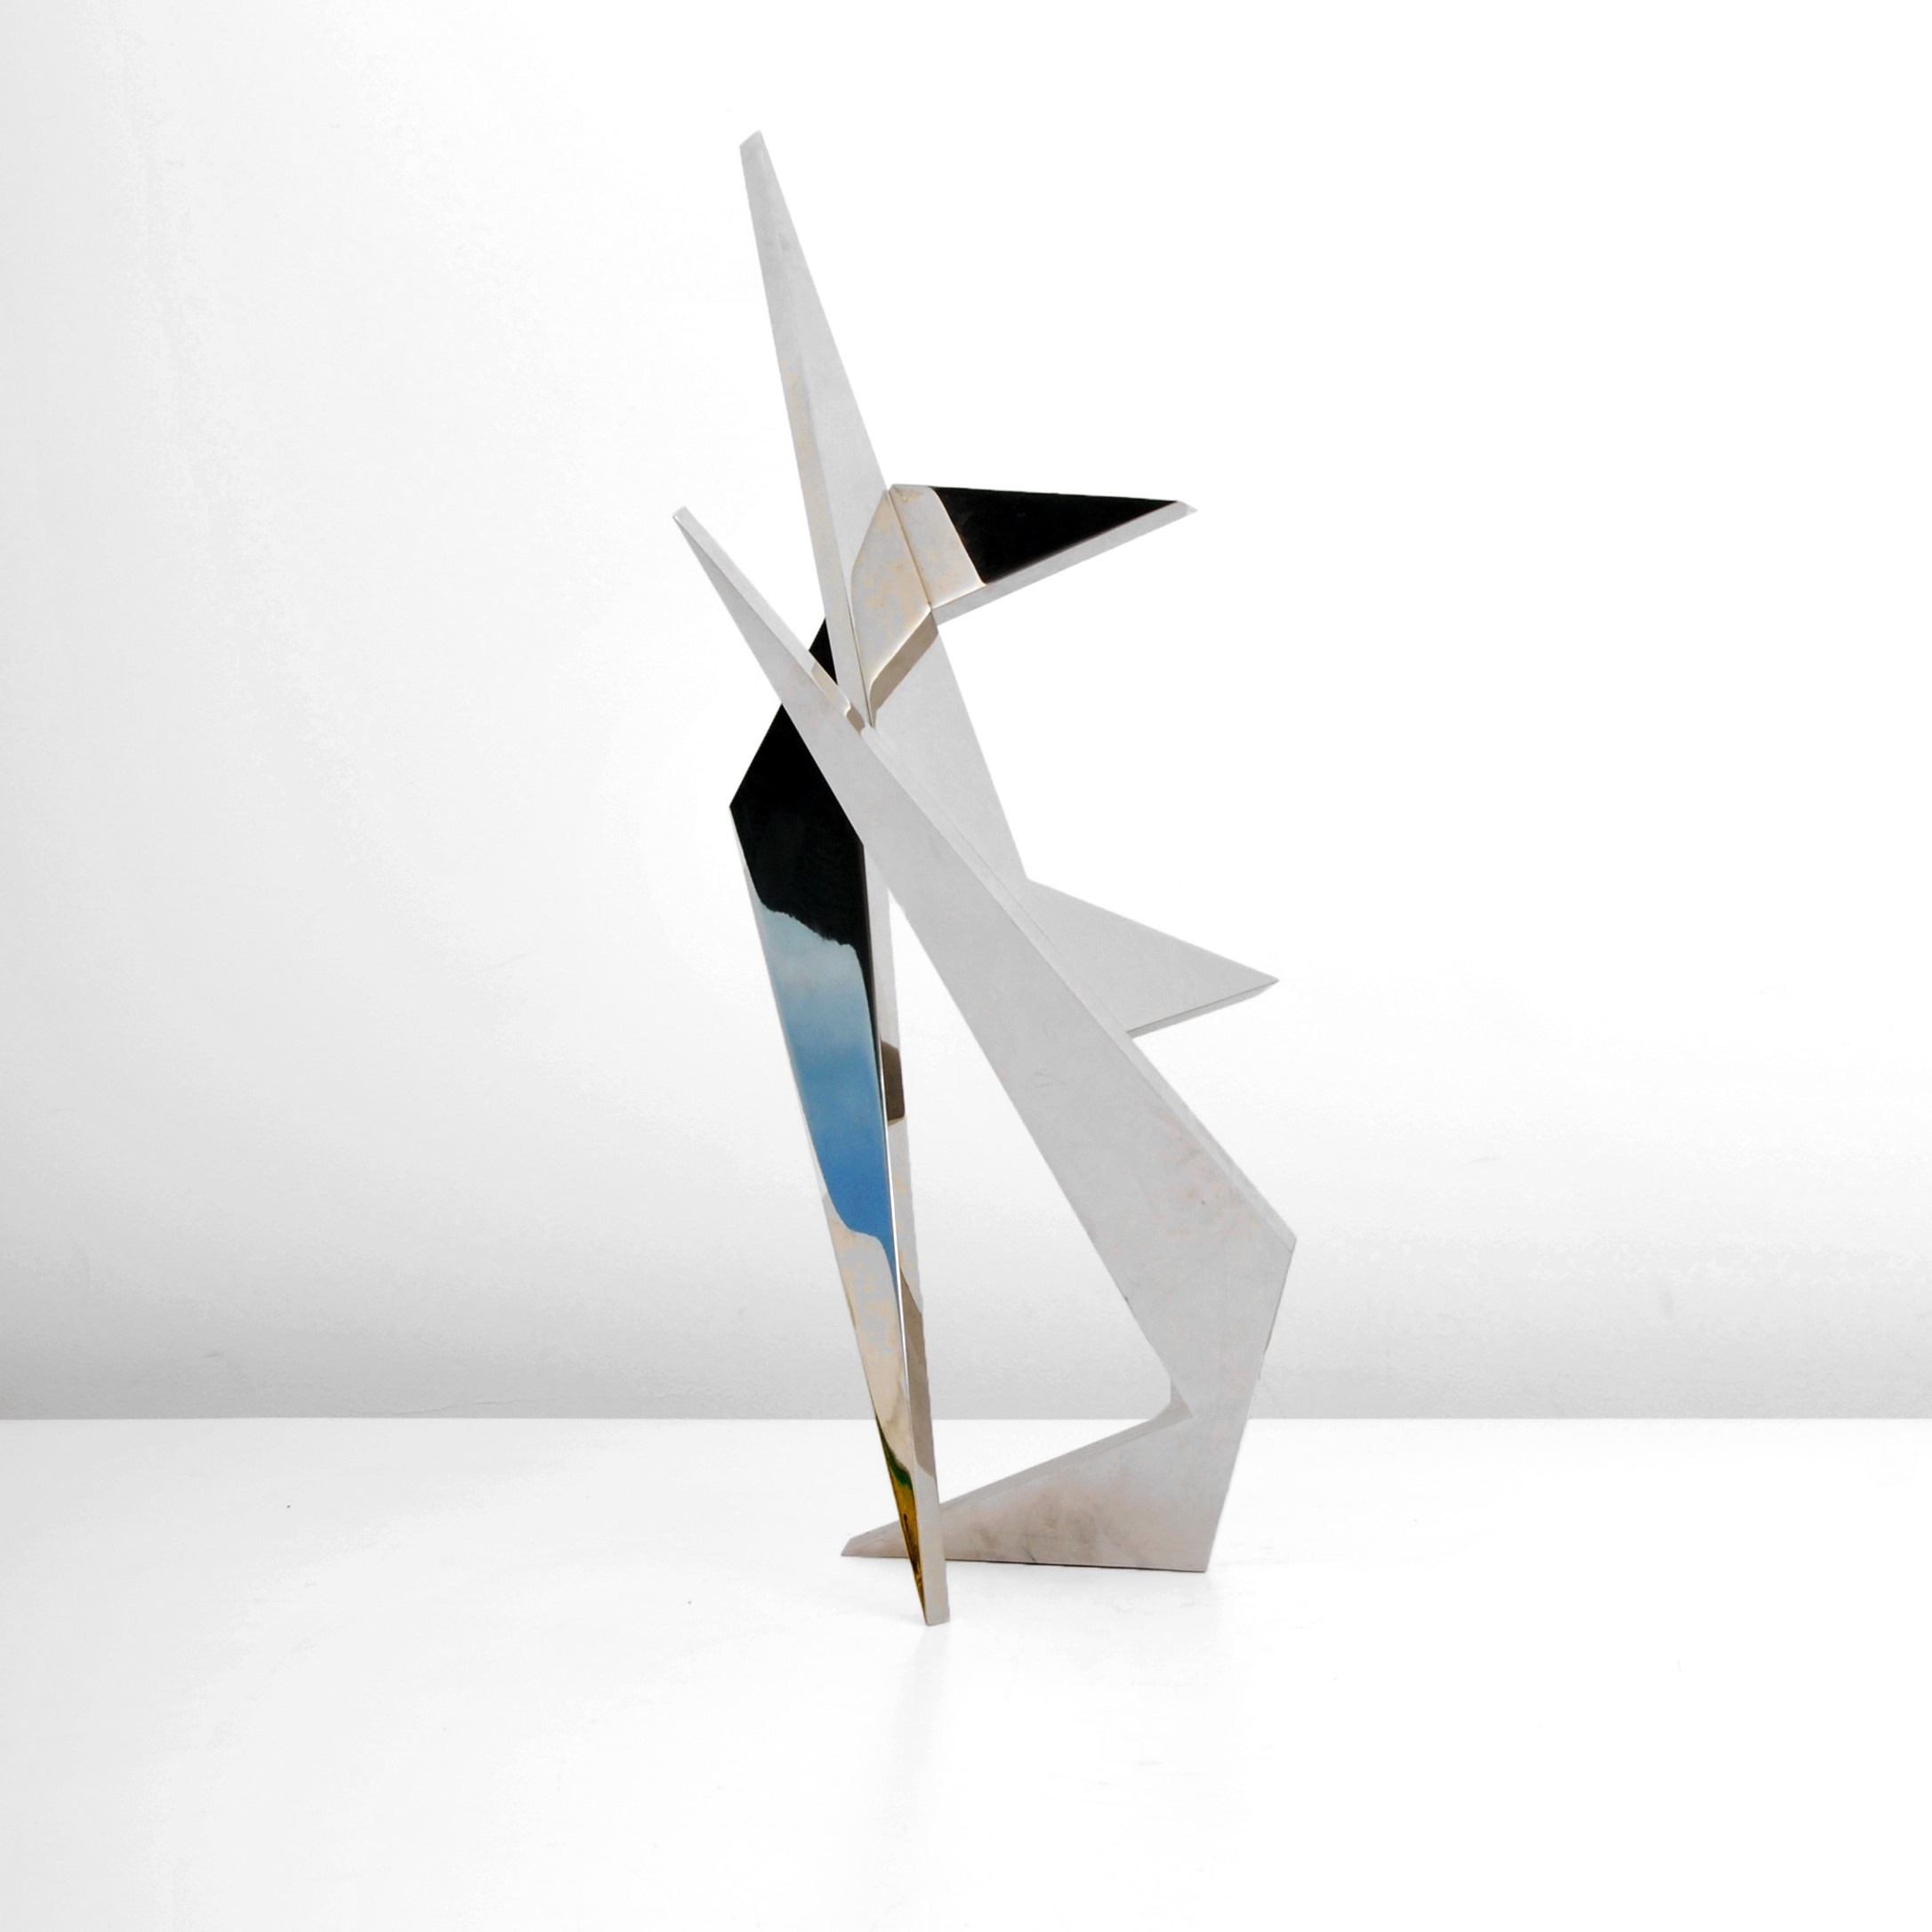 Larry Mohr (American, 1921-2013), stainless steel sculpture, signed, dated 1999. Est. $1,500-$2,500.